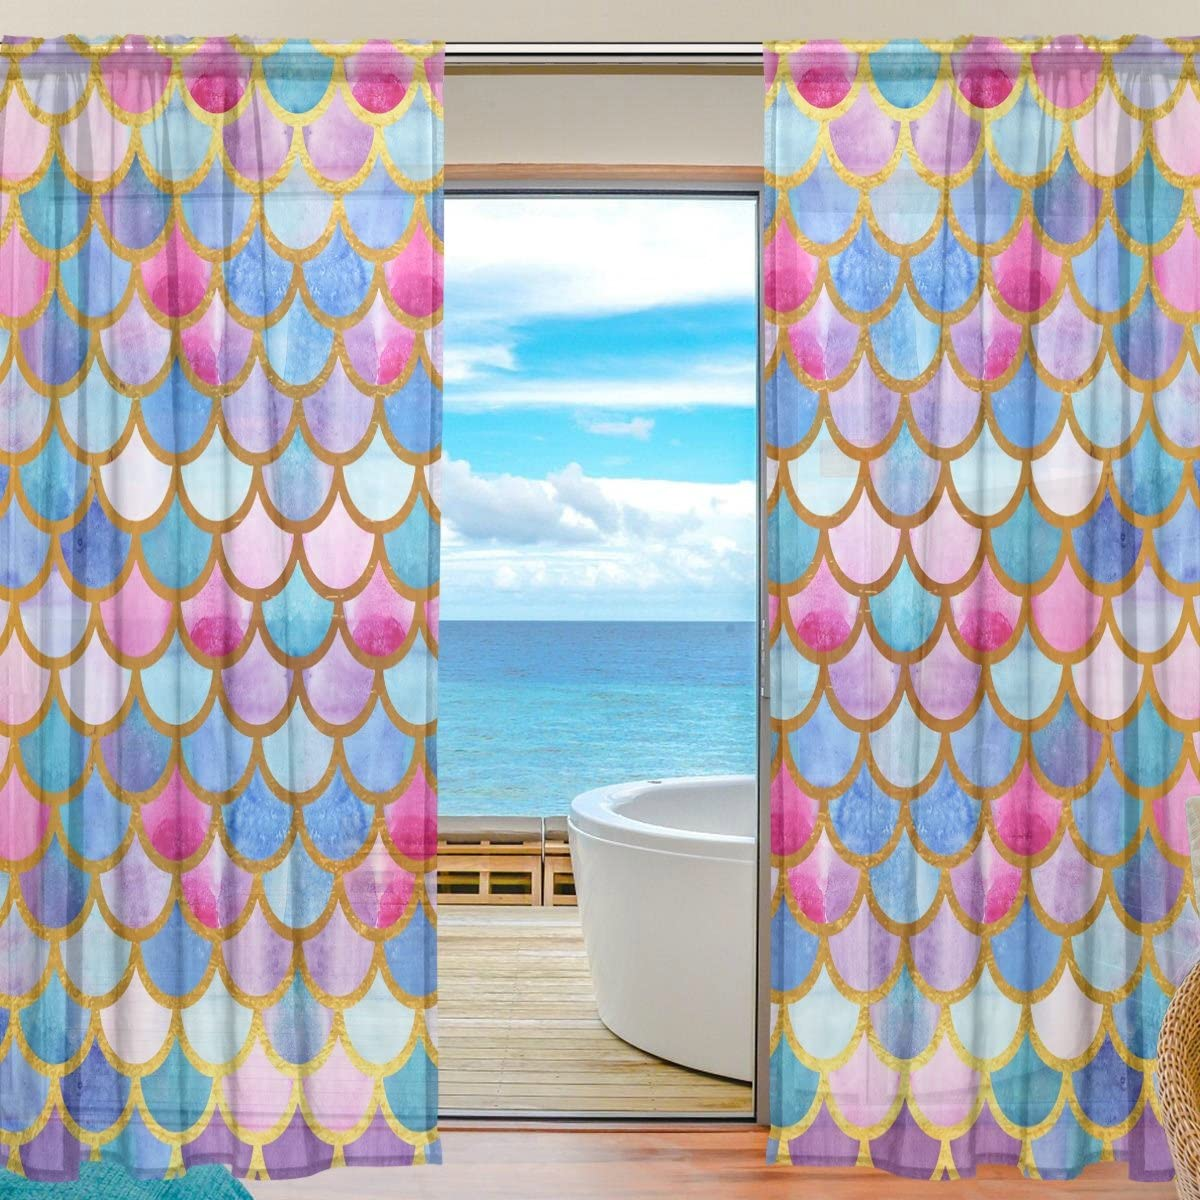 SEULIFE Window Sheer Curtain, Sea Ocean Animal Mermaid Fish Scales Voile Curtain Drapes for Door Kitchen Living Room Bedroom 55×78 inches 2 Panels